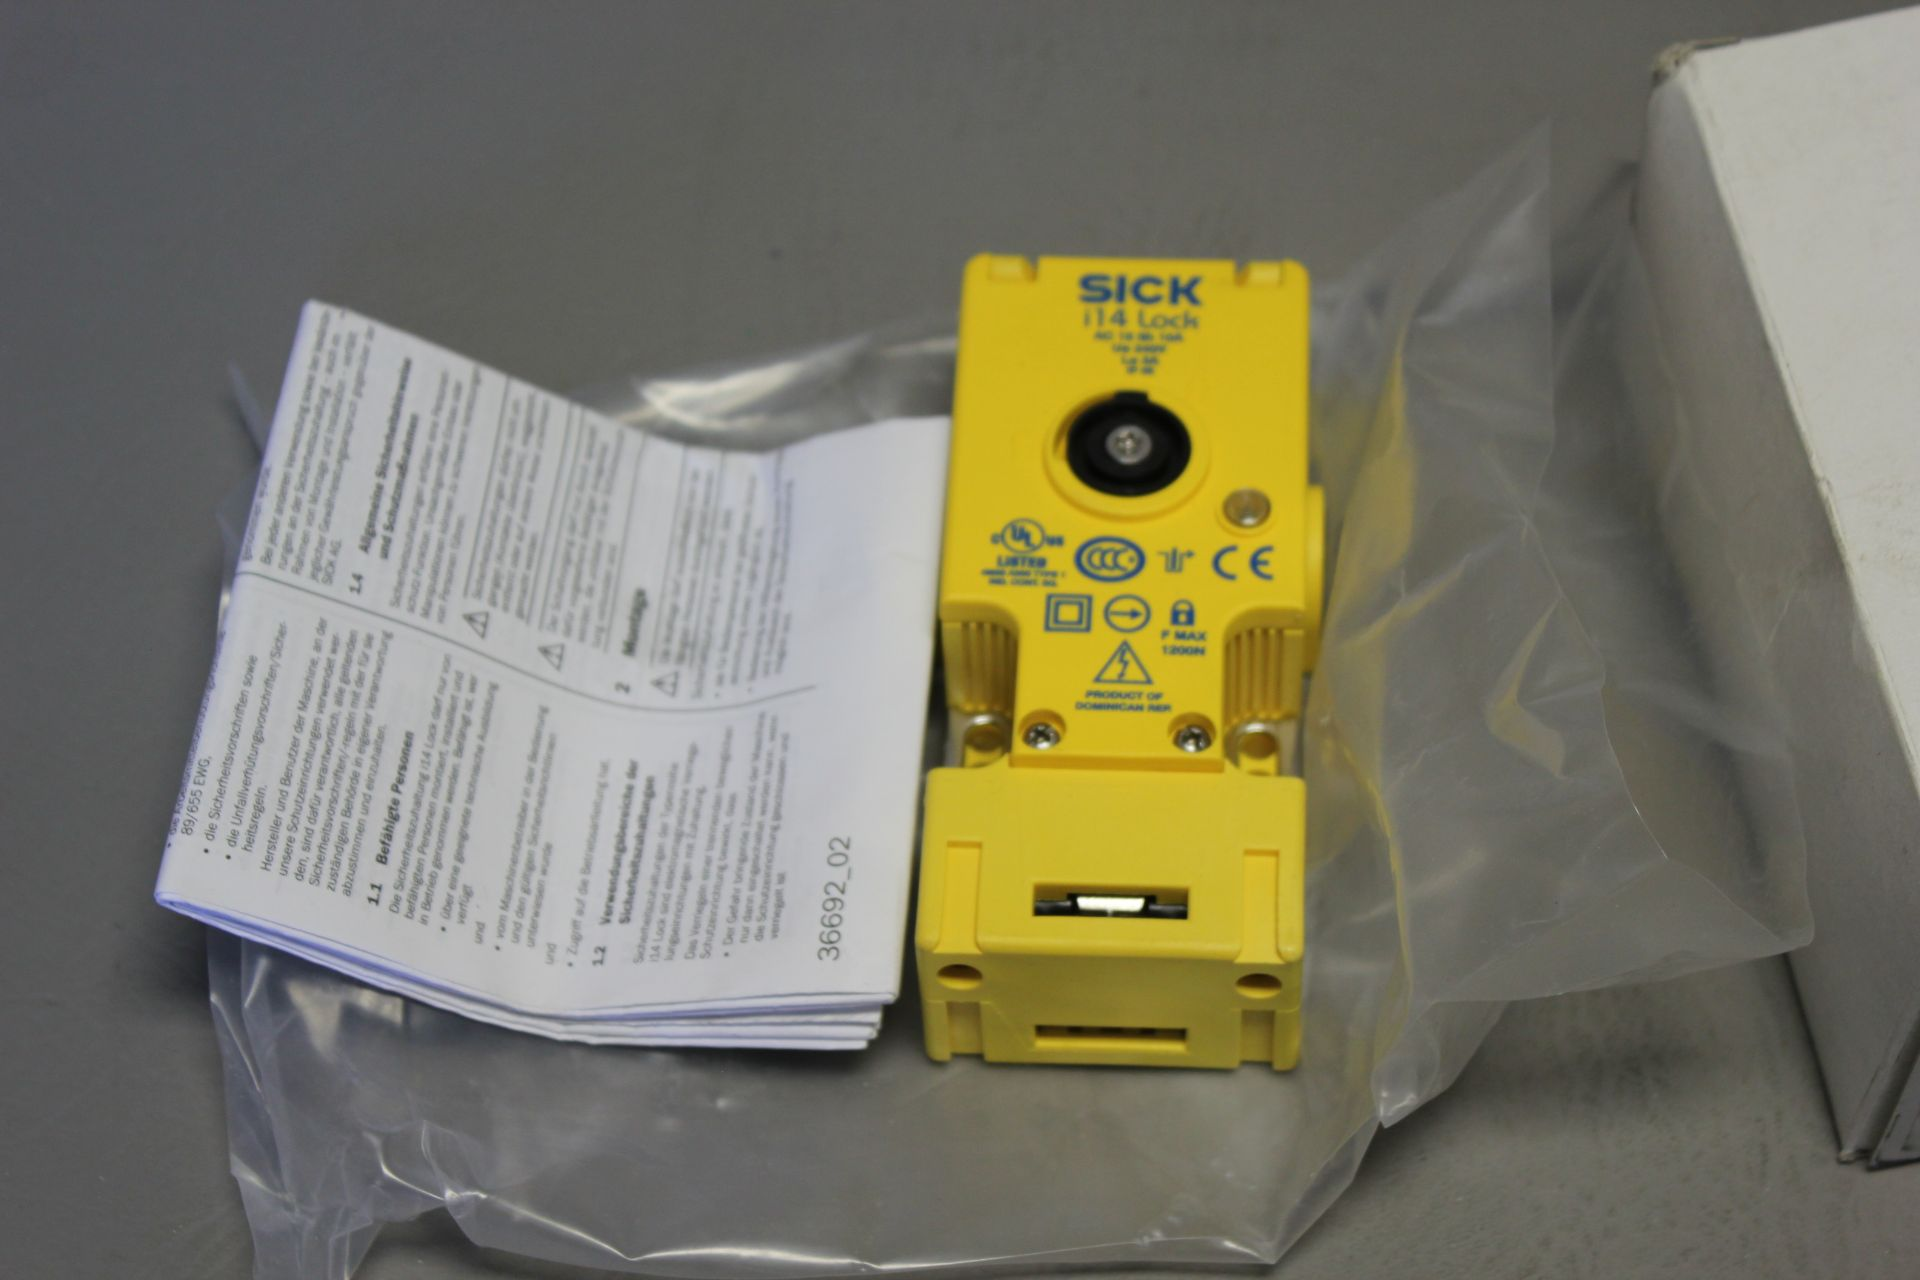 NEW SICK i14 SAFETY SWITCH - Image 3 of 5